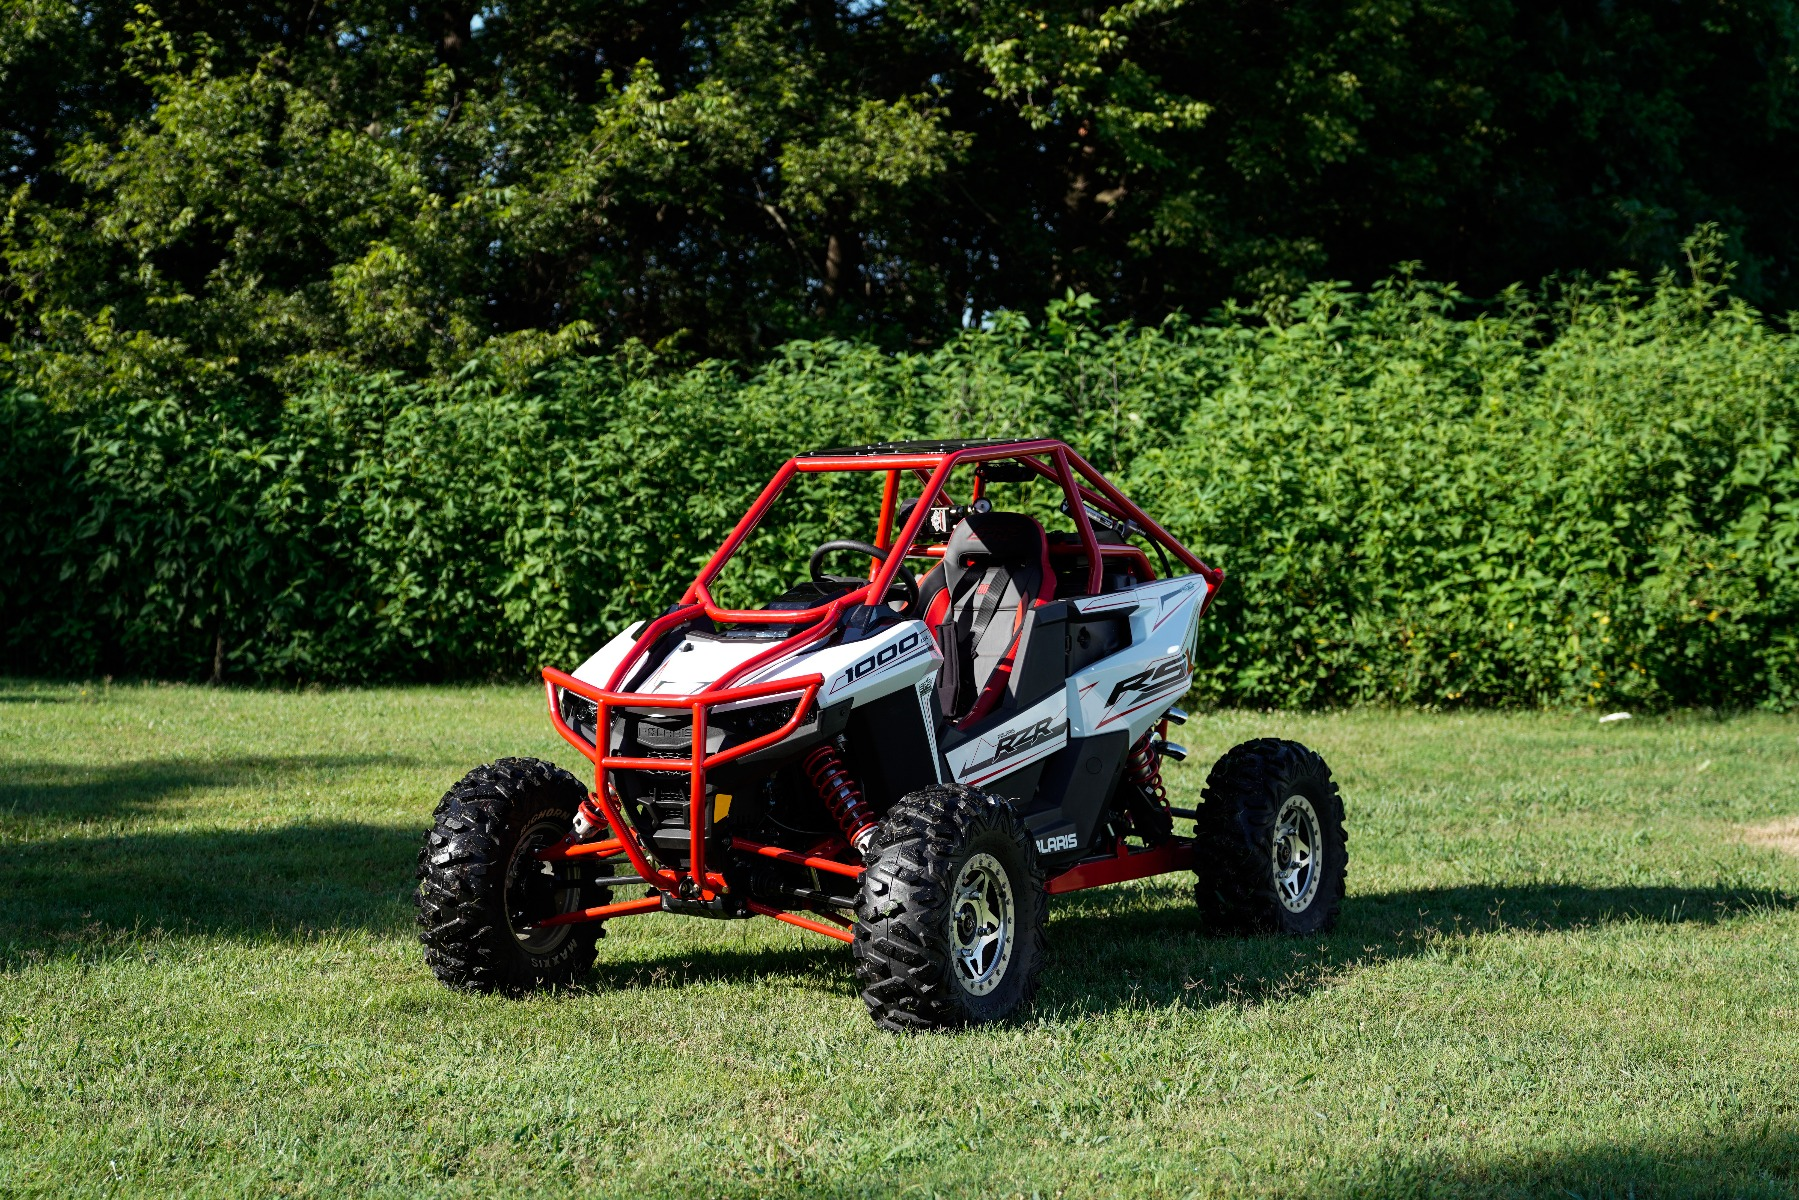 Polaris RZR RS1 Roll Cage in grass Image 5